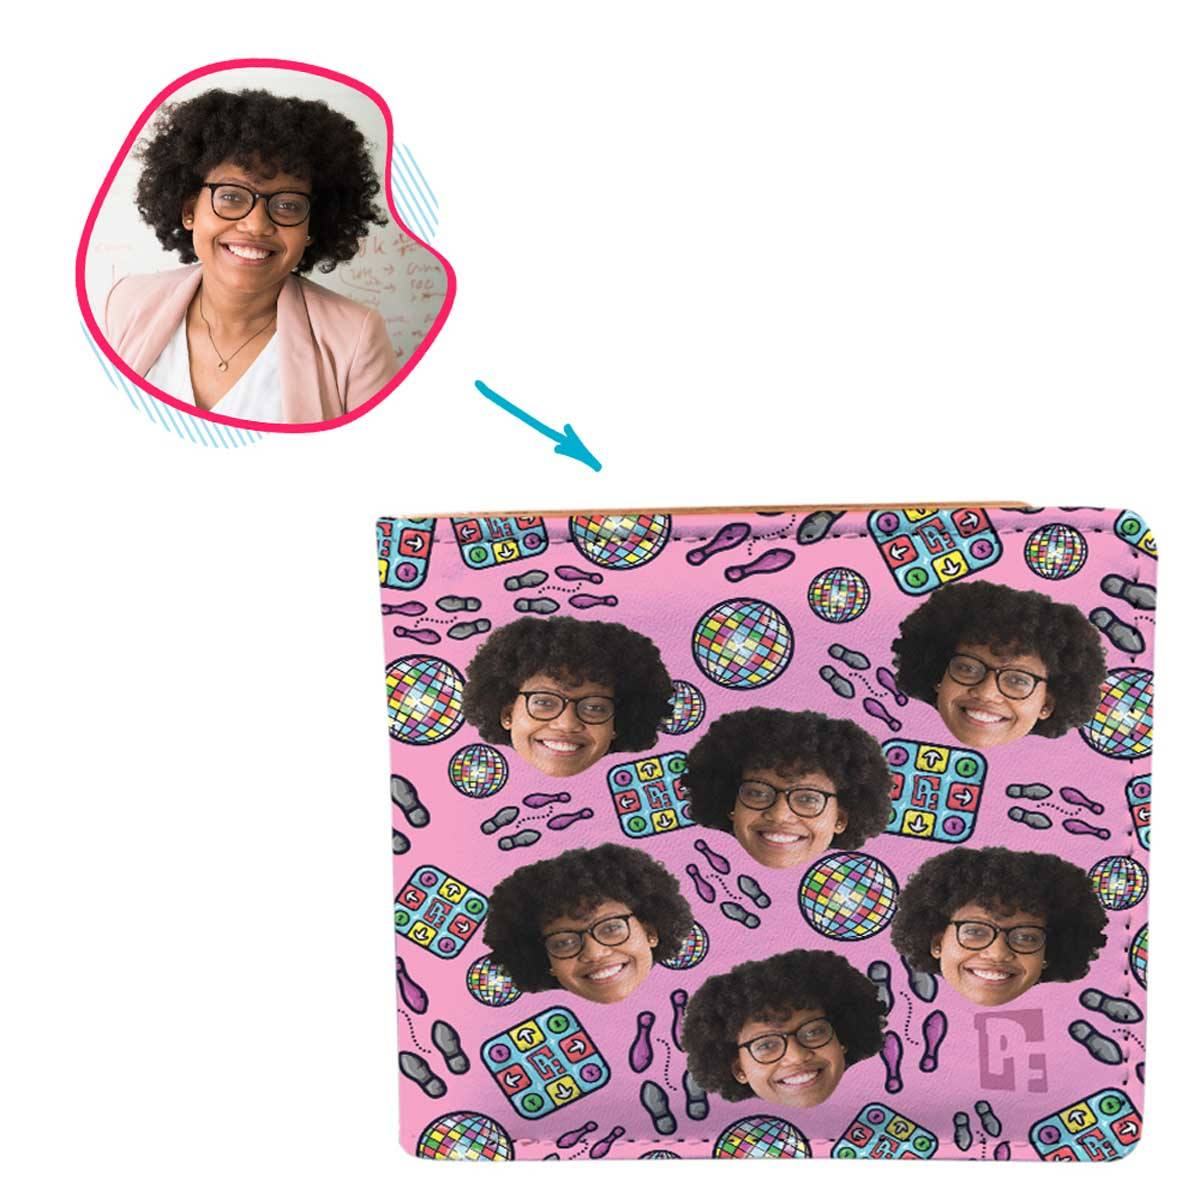 pink Dancing wallet personalized with photo of face printed on it